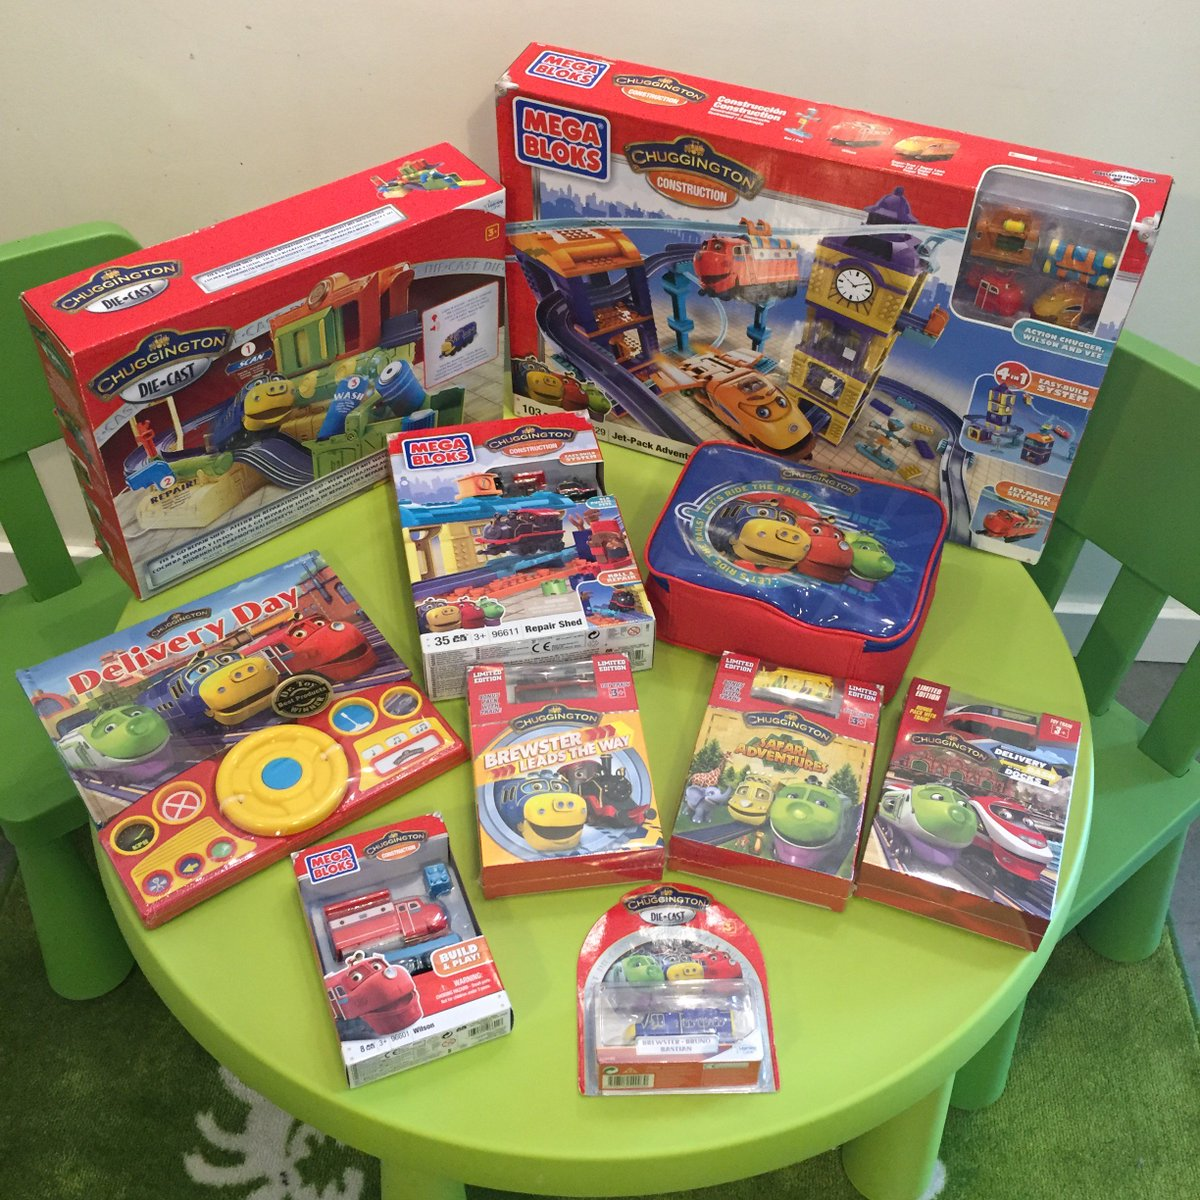 In honor of #TrainDay tmw, celebrate w/ our favorite train, @Chuggington! RT&Fav 4 a chance to win ALL of this swag! https://t.co/0YJJ7uasGC